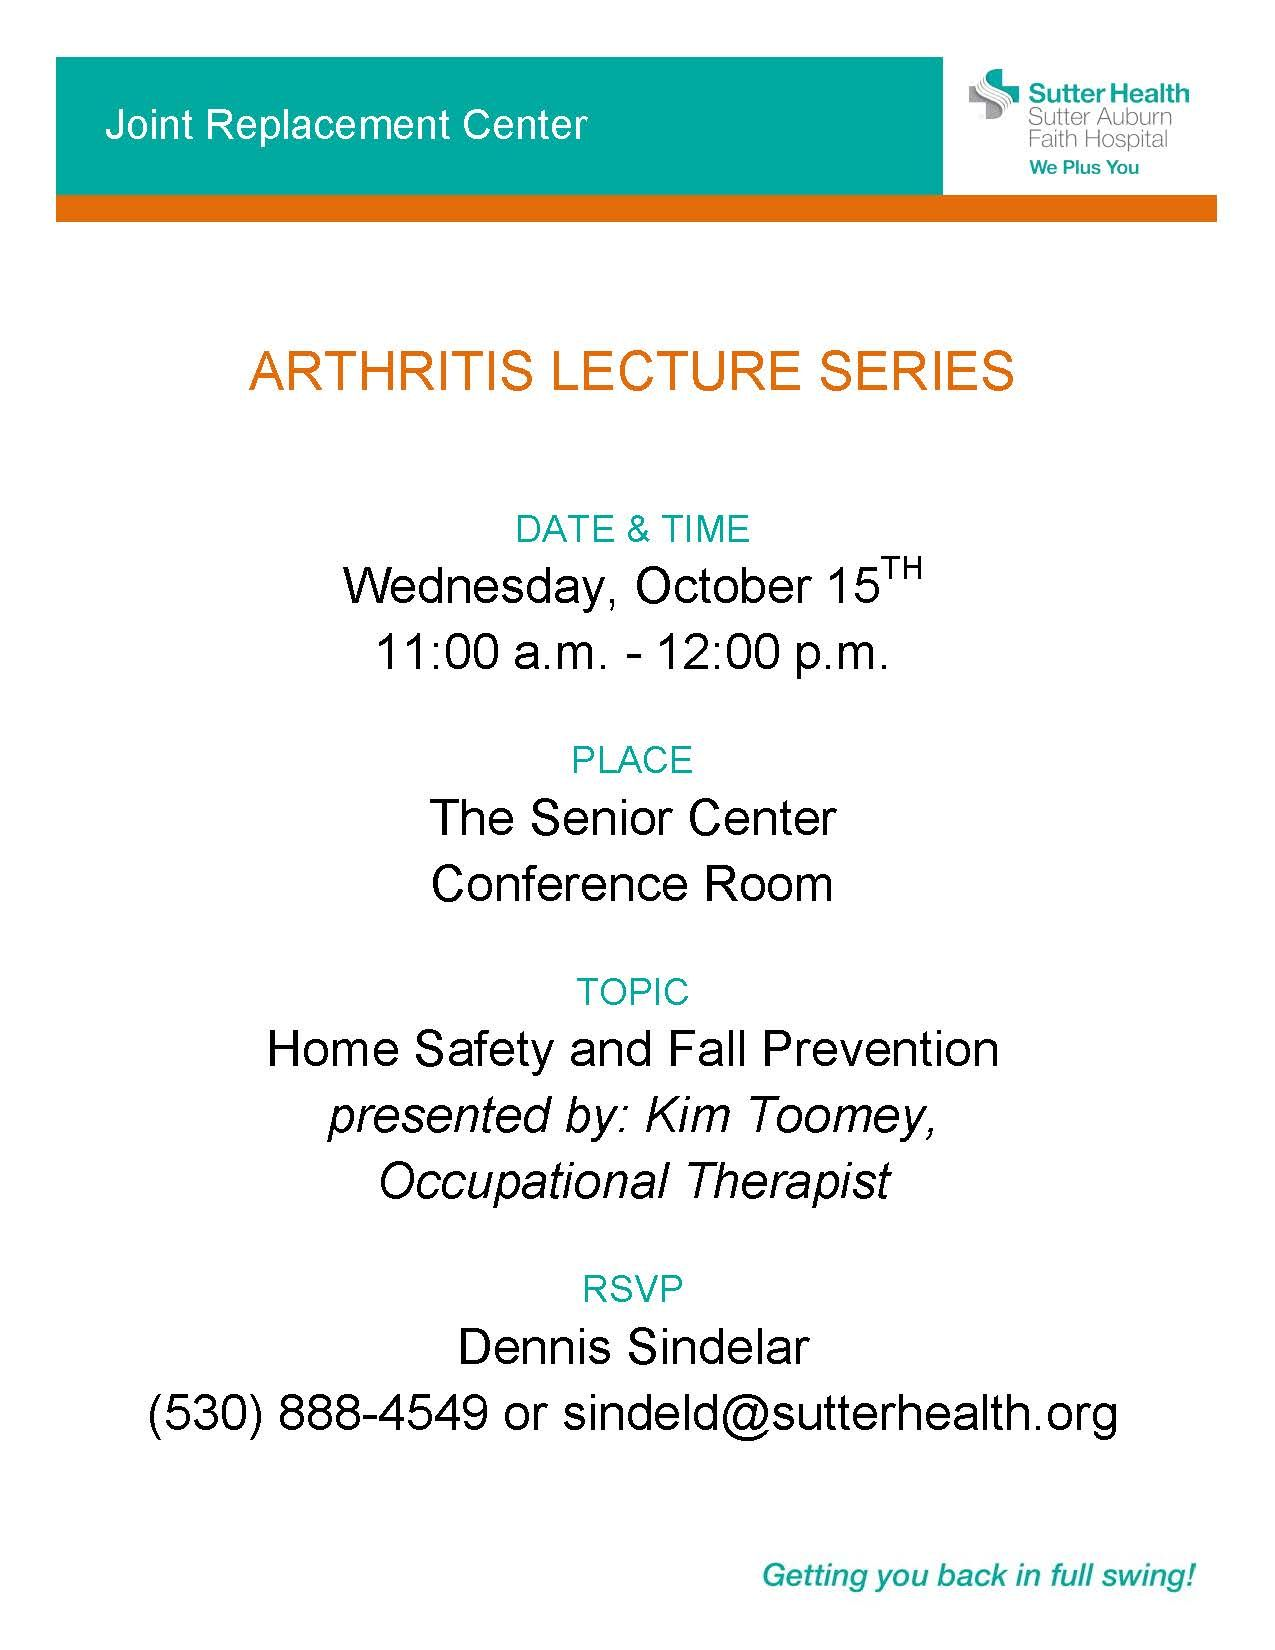 As part of our Arthritis Lecture Series, the Joint